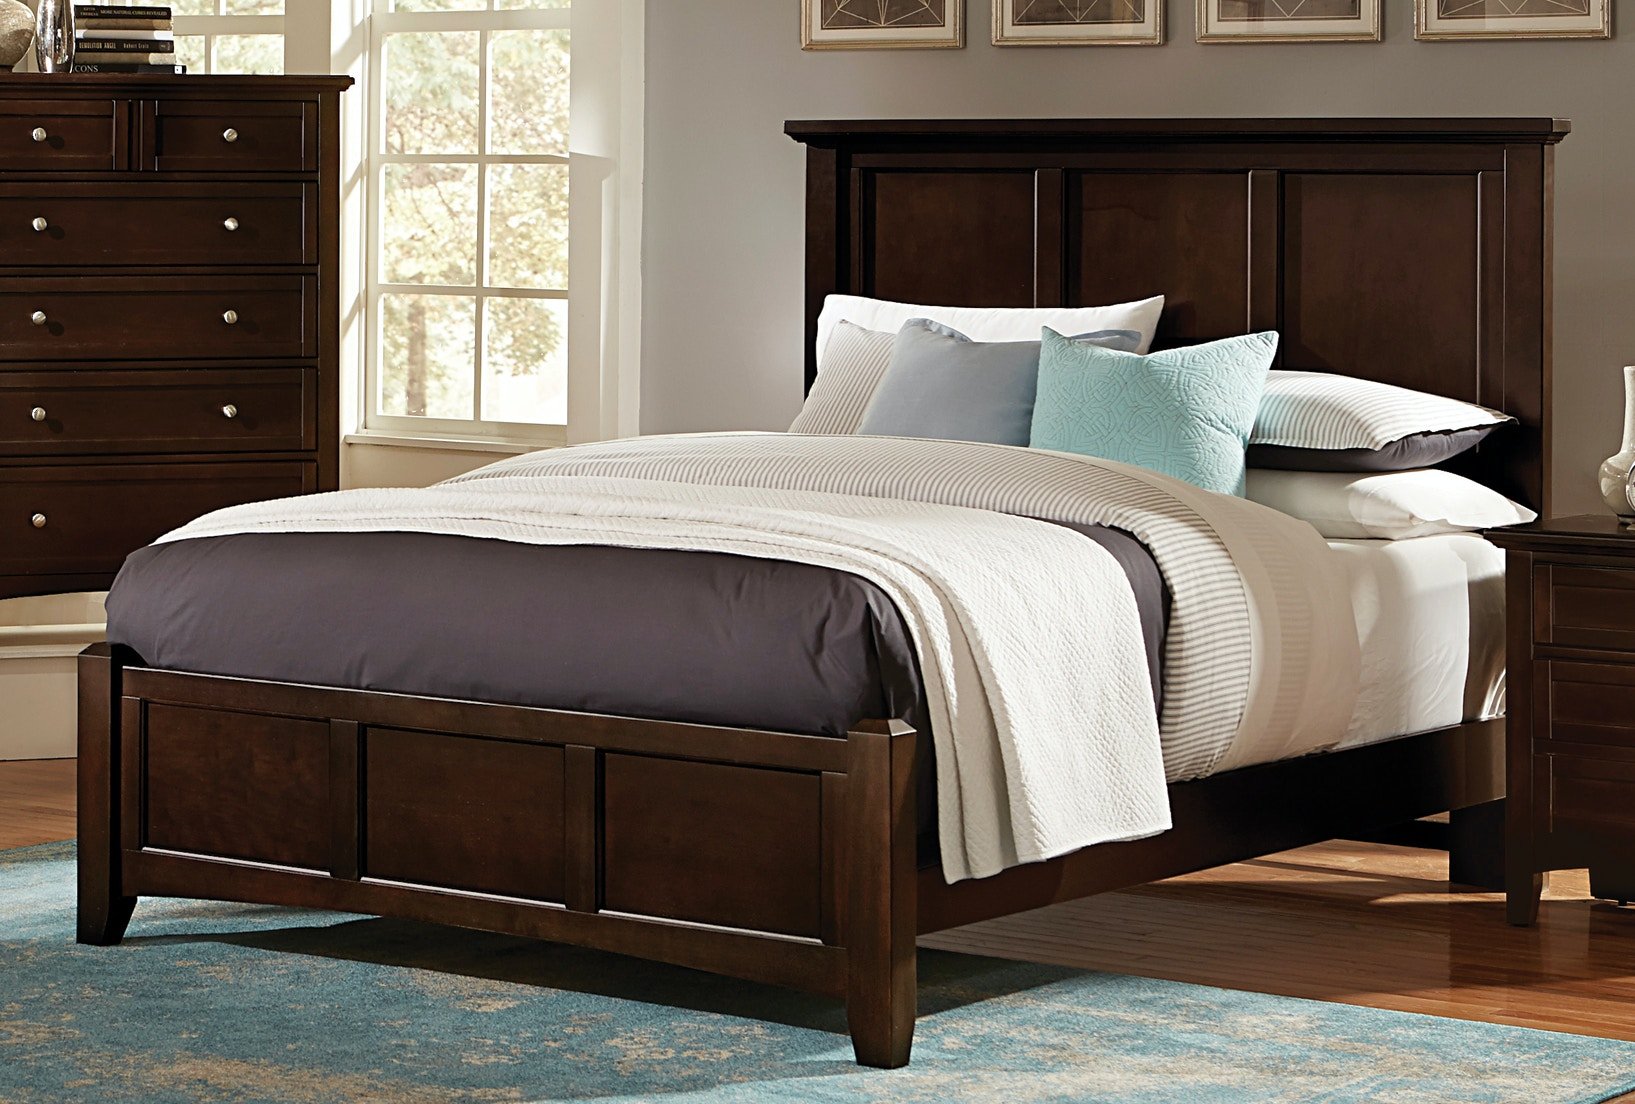 Bedroom Beds Kittle S Furniture Indiana